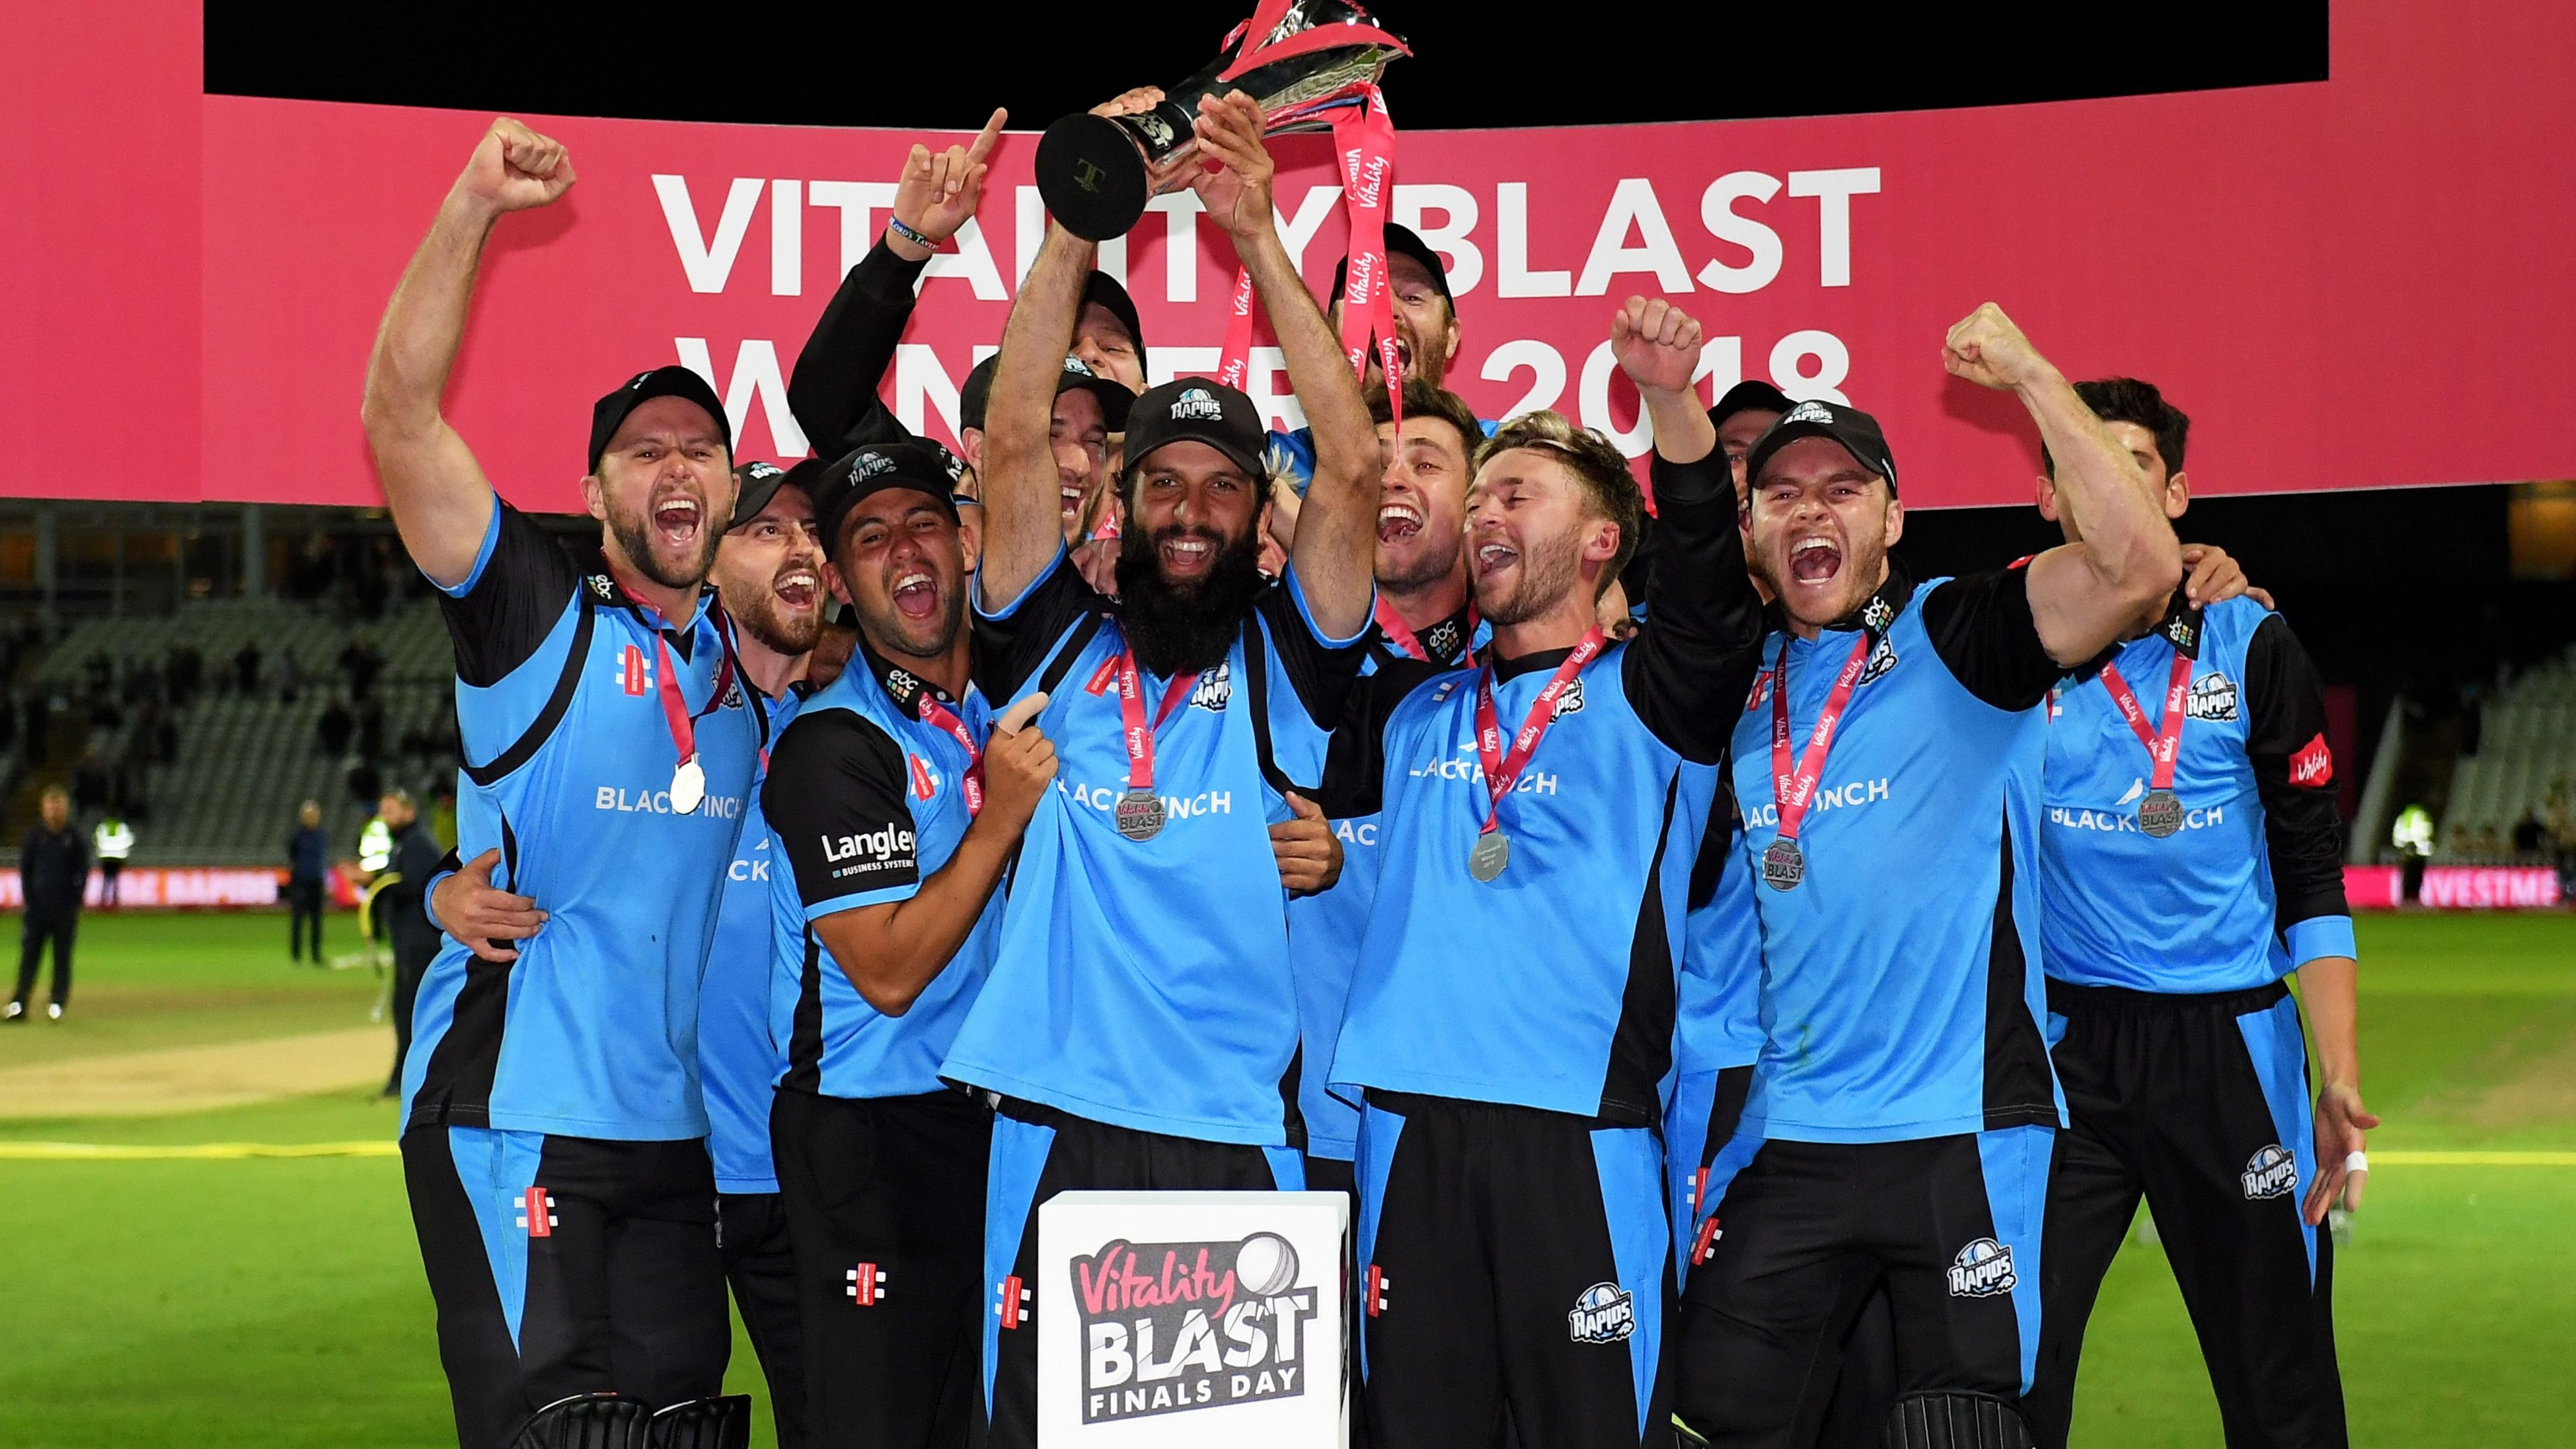 T20 Blast Finals Day: Worcestershire's triumph as it happened - Live